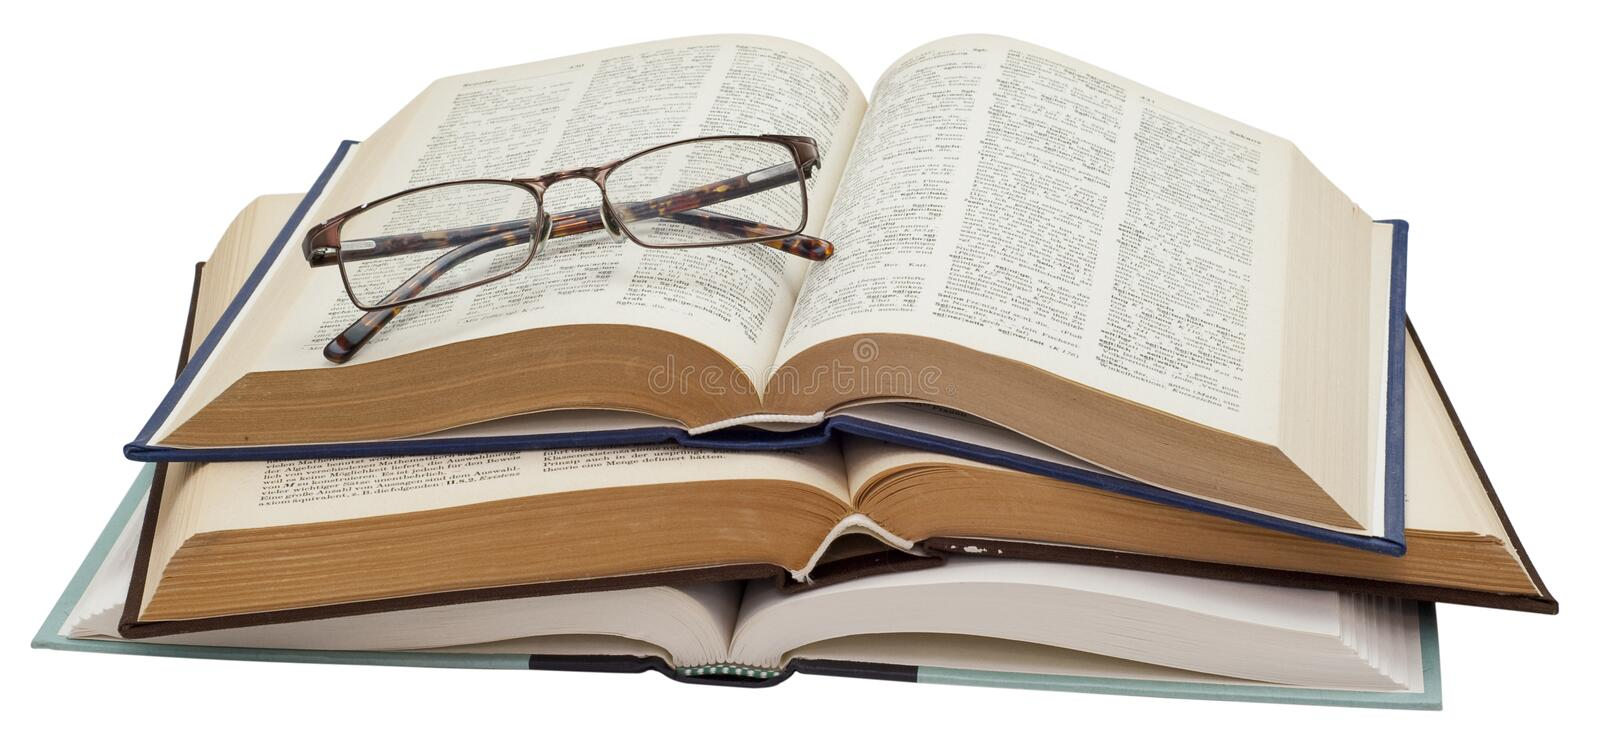 Download Folded Glasses On Three Open Books Stock Photo - Image: 11165188